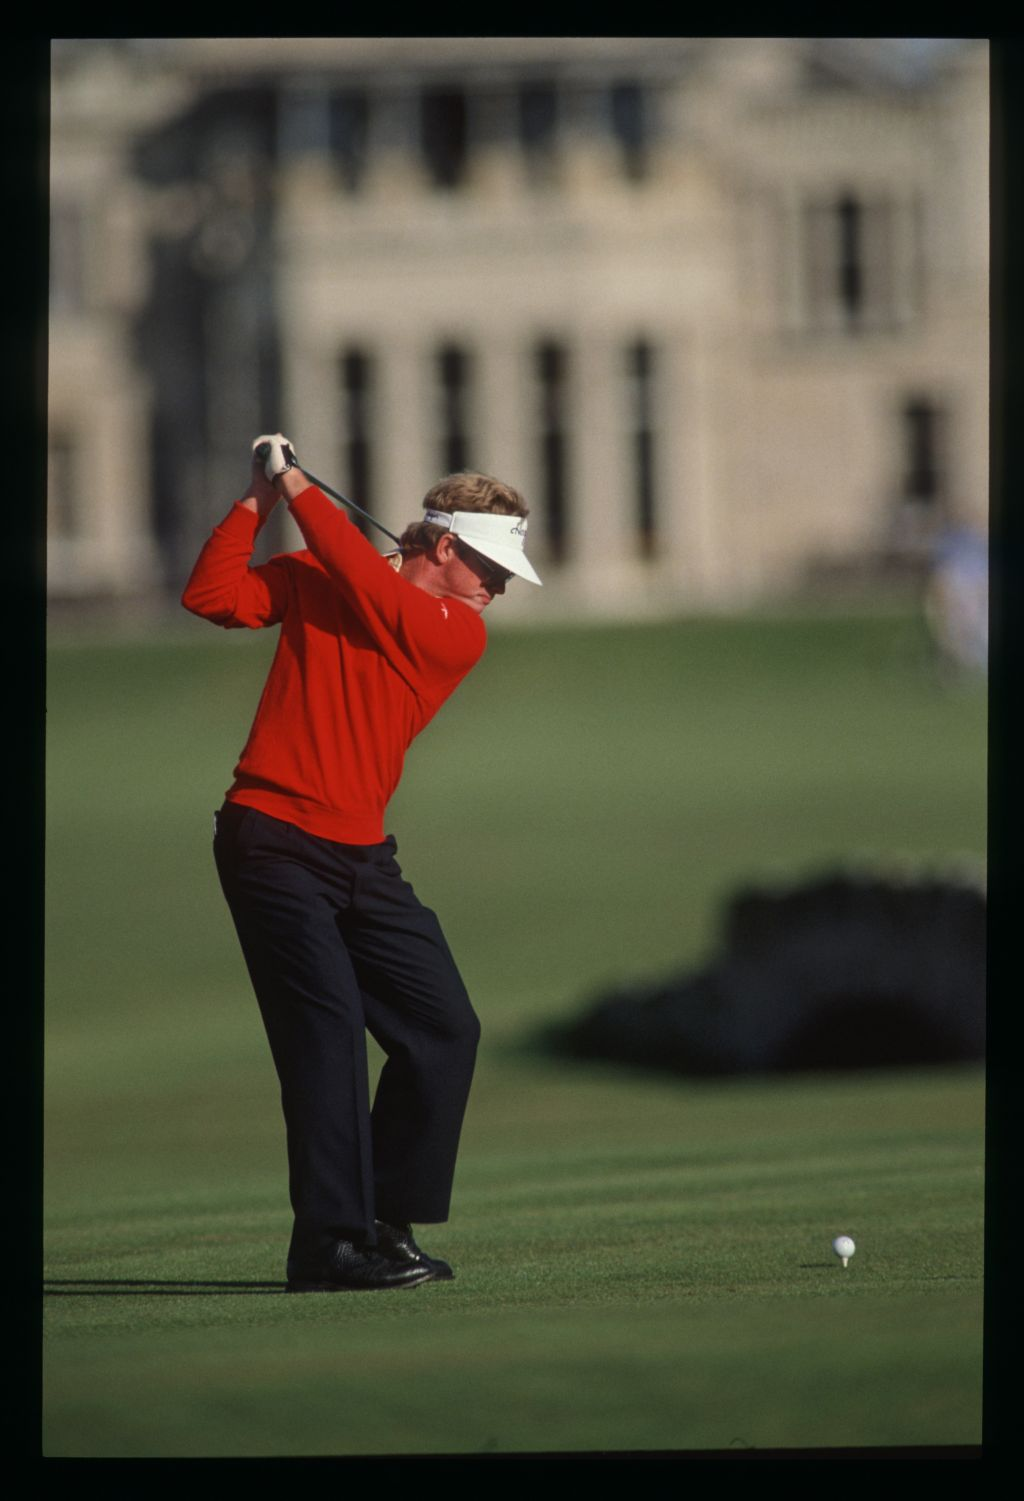 American Tom Kite on the tee at the 1989 Dunhill Cup at St Andrews